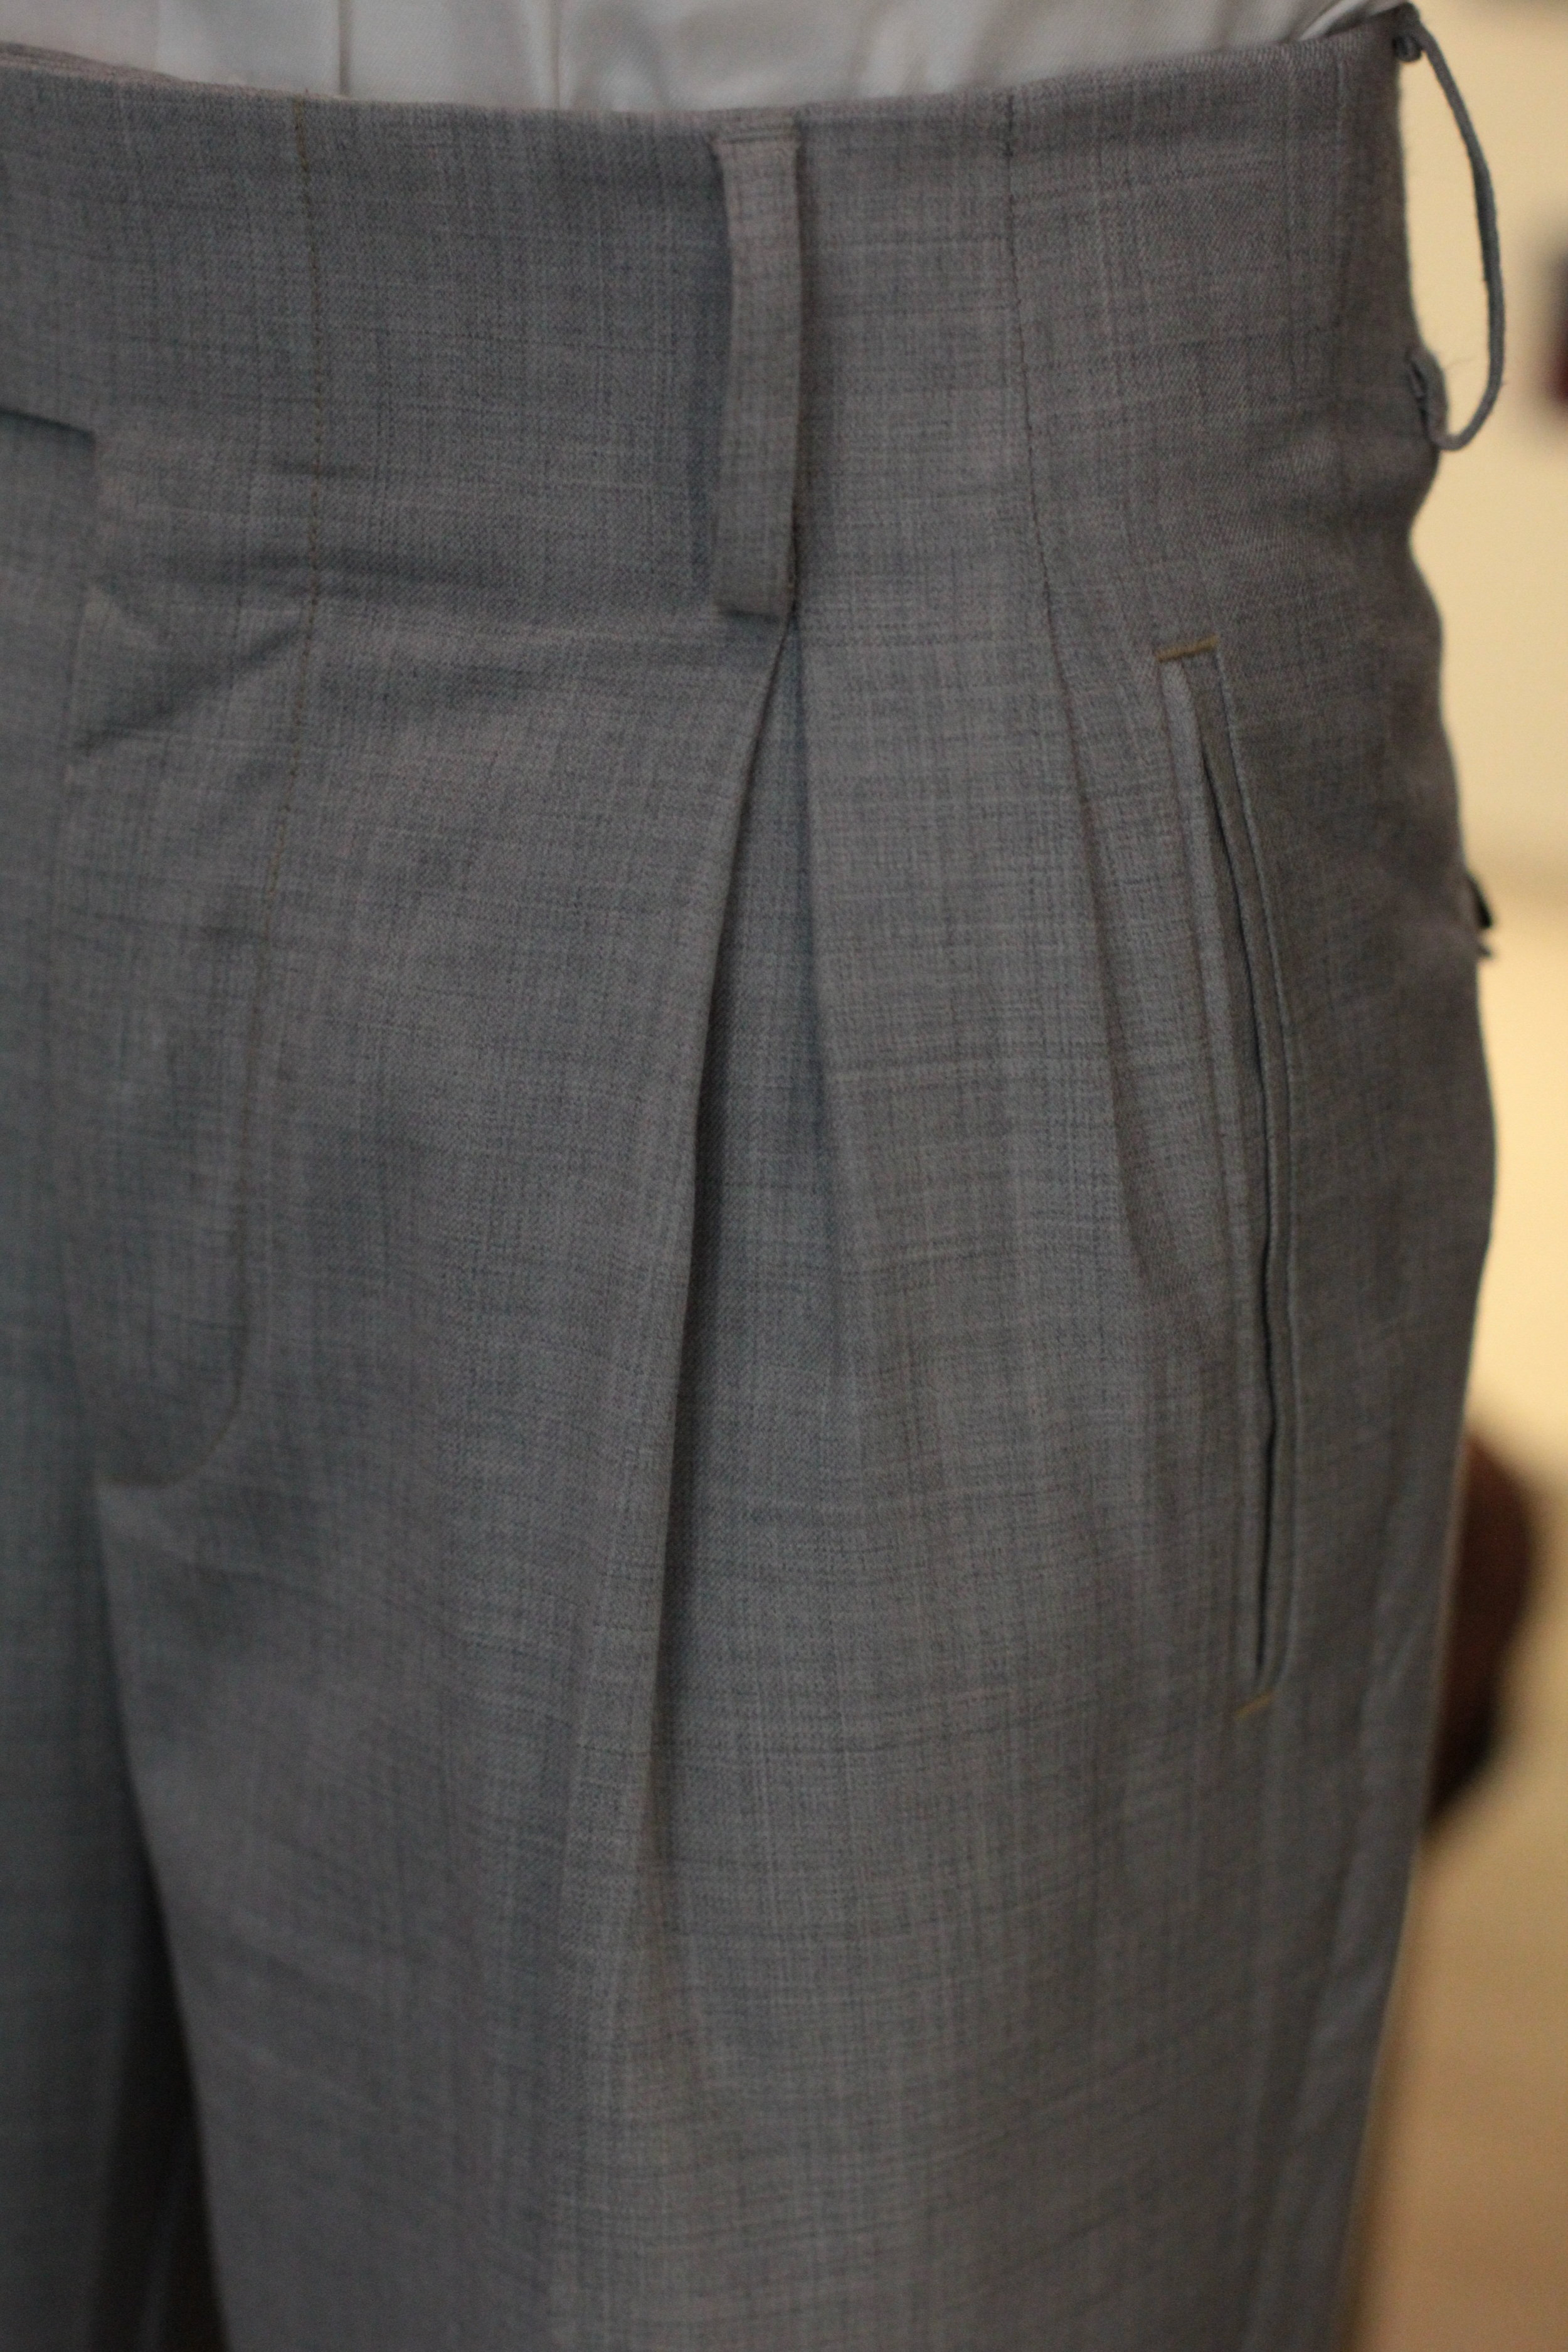 Vertical Pockets with yellow stitching.